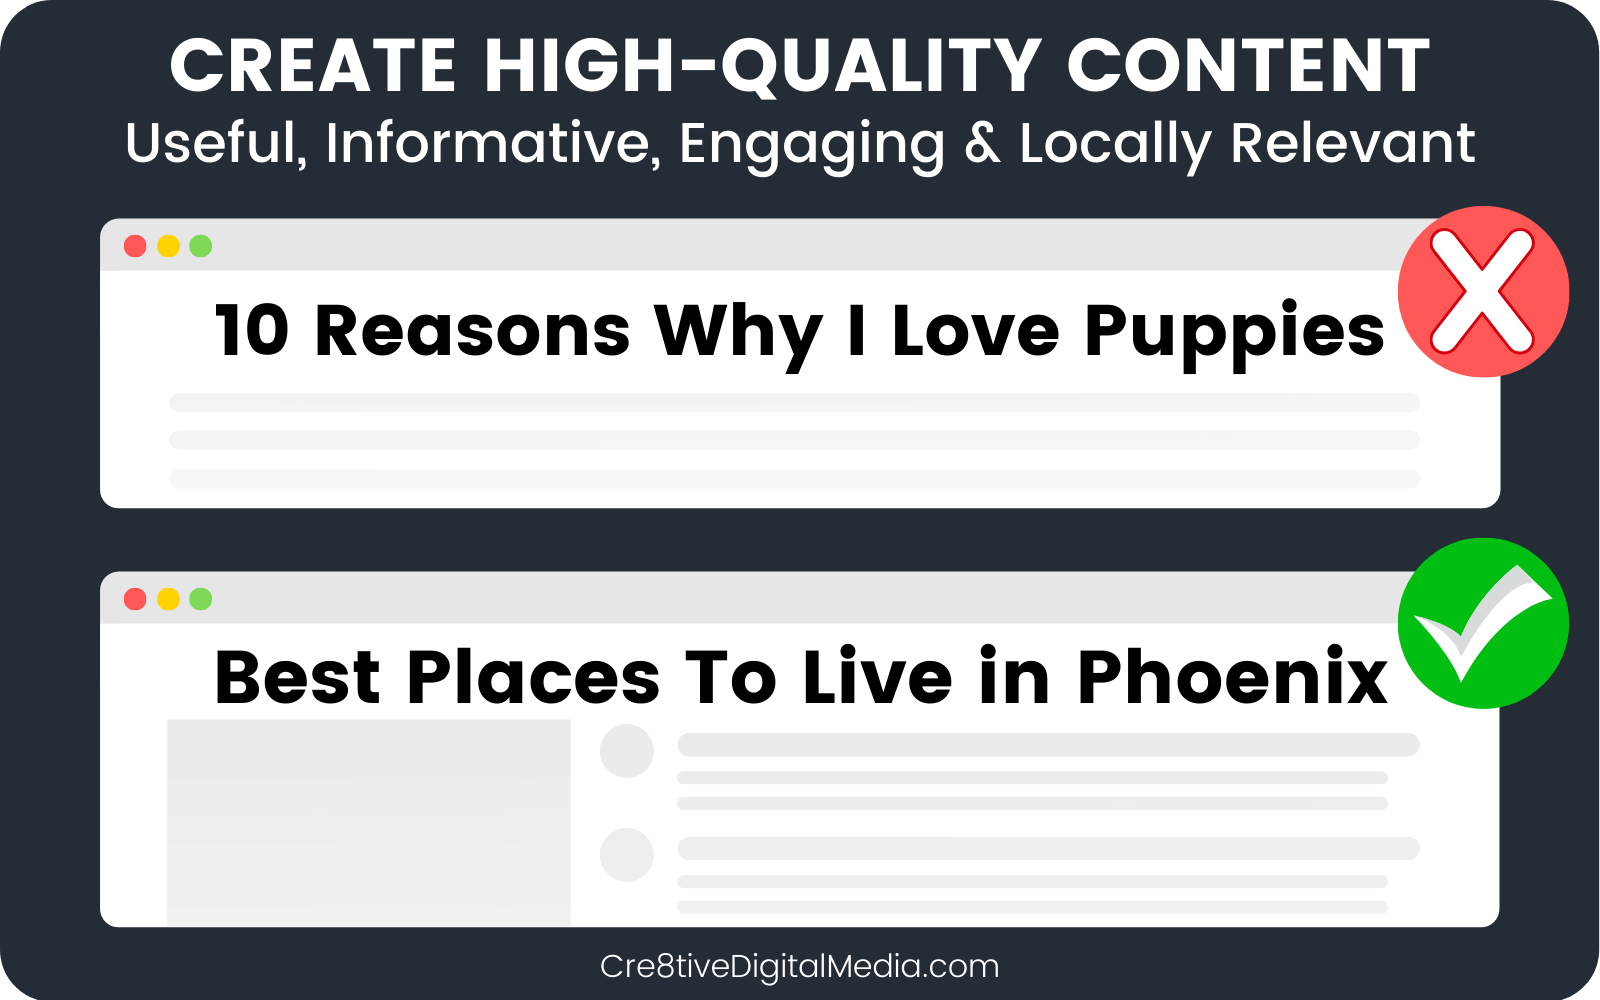 Create High-Quality & Locally Relevant Content